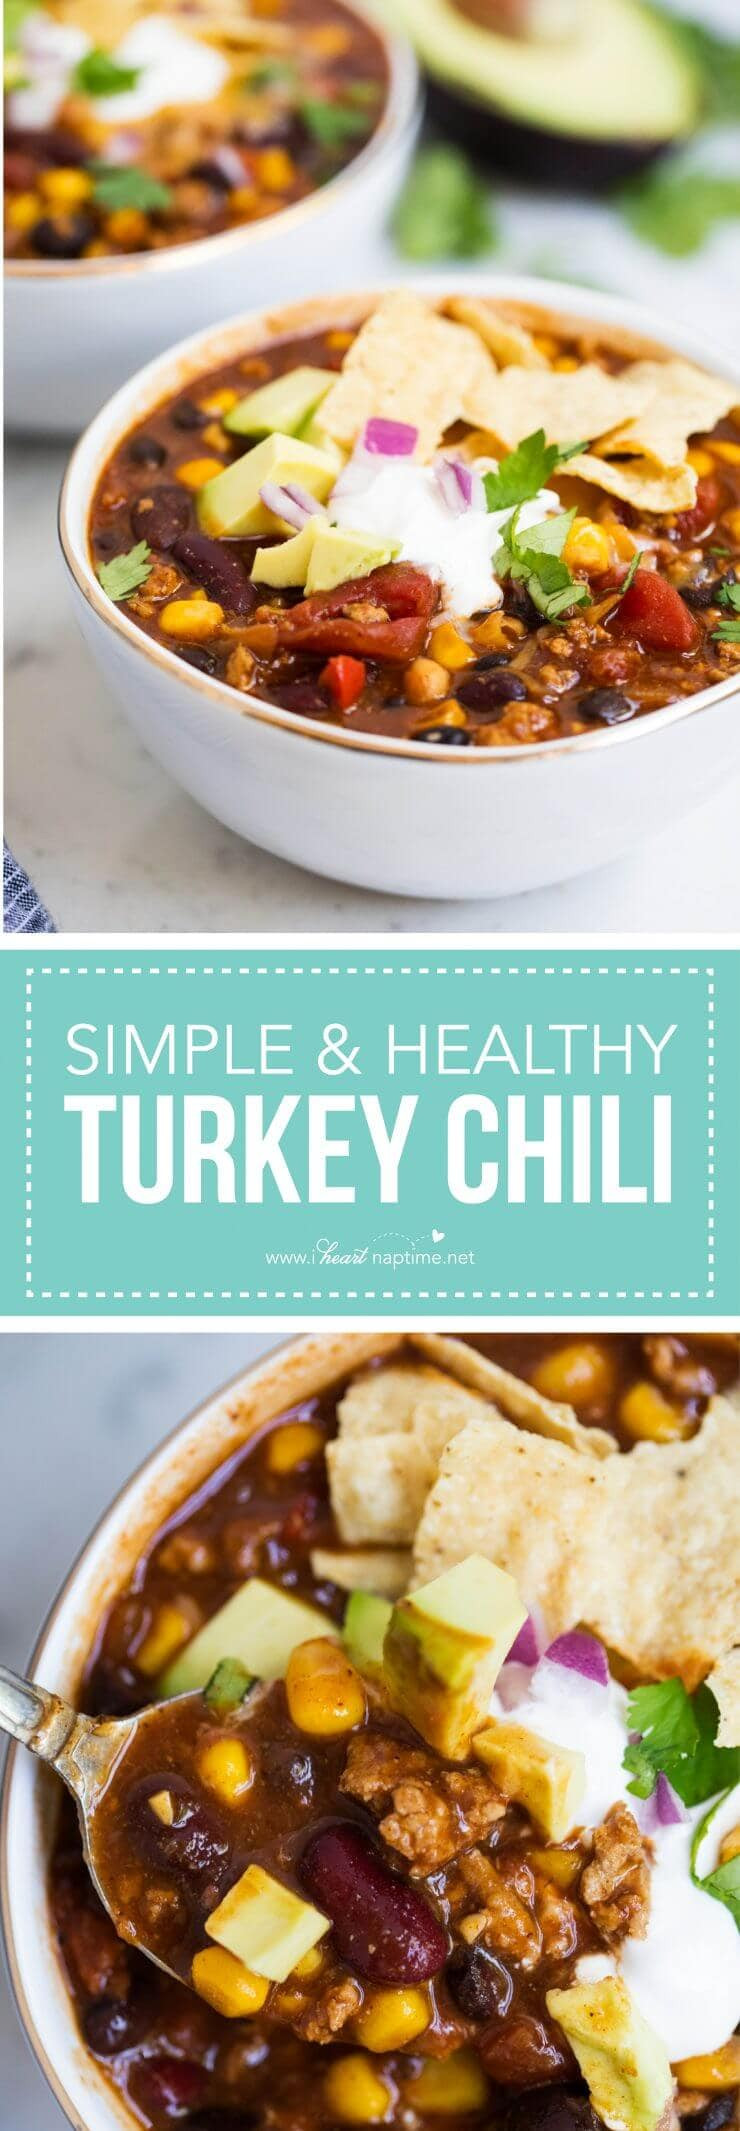 Easy Healthy Turkey Chili  real simple turkey chili recipe